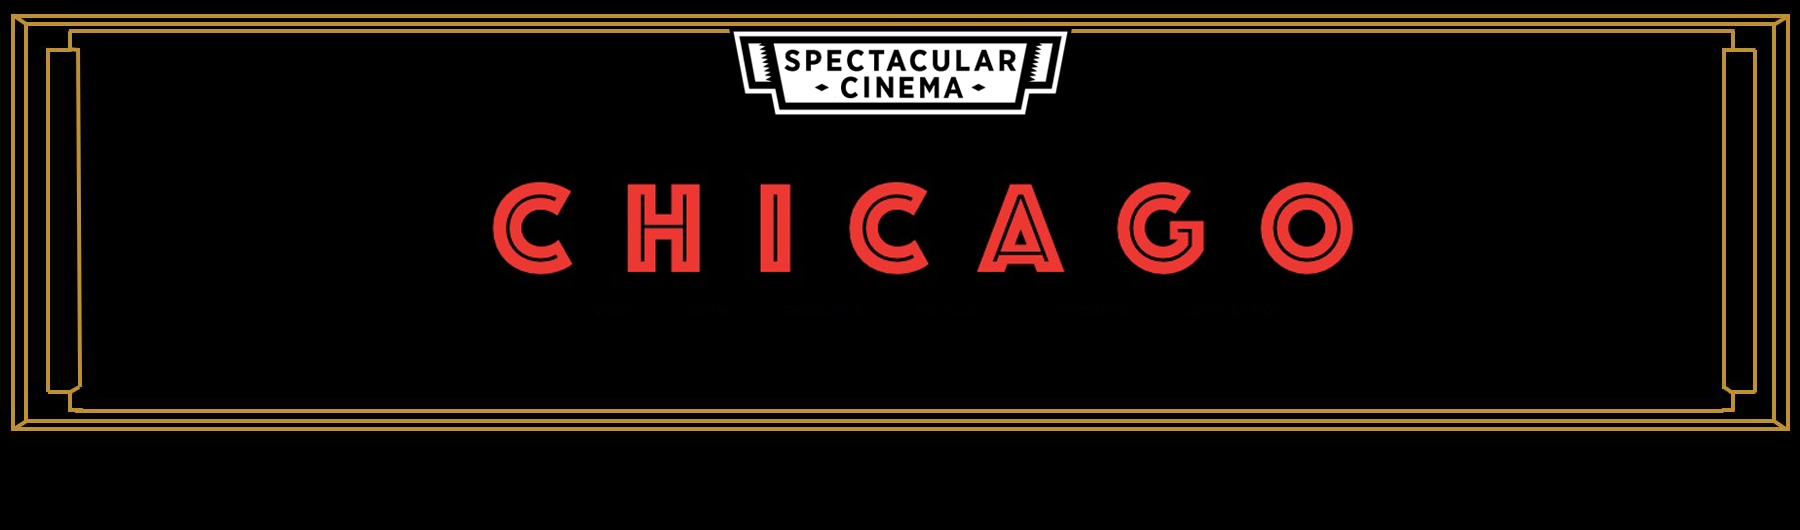 Spectacular Cinema Presents - Chicago